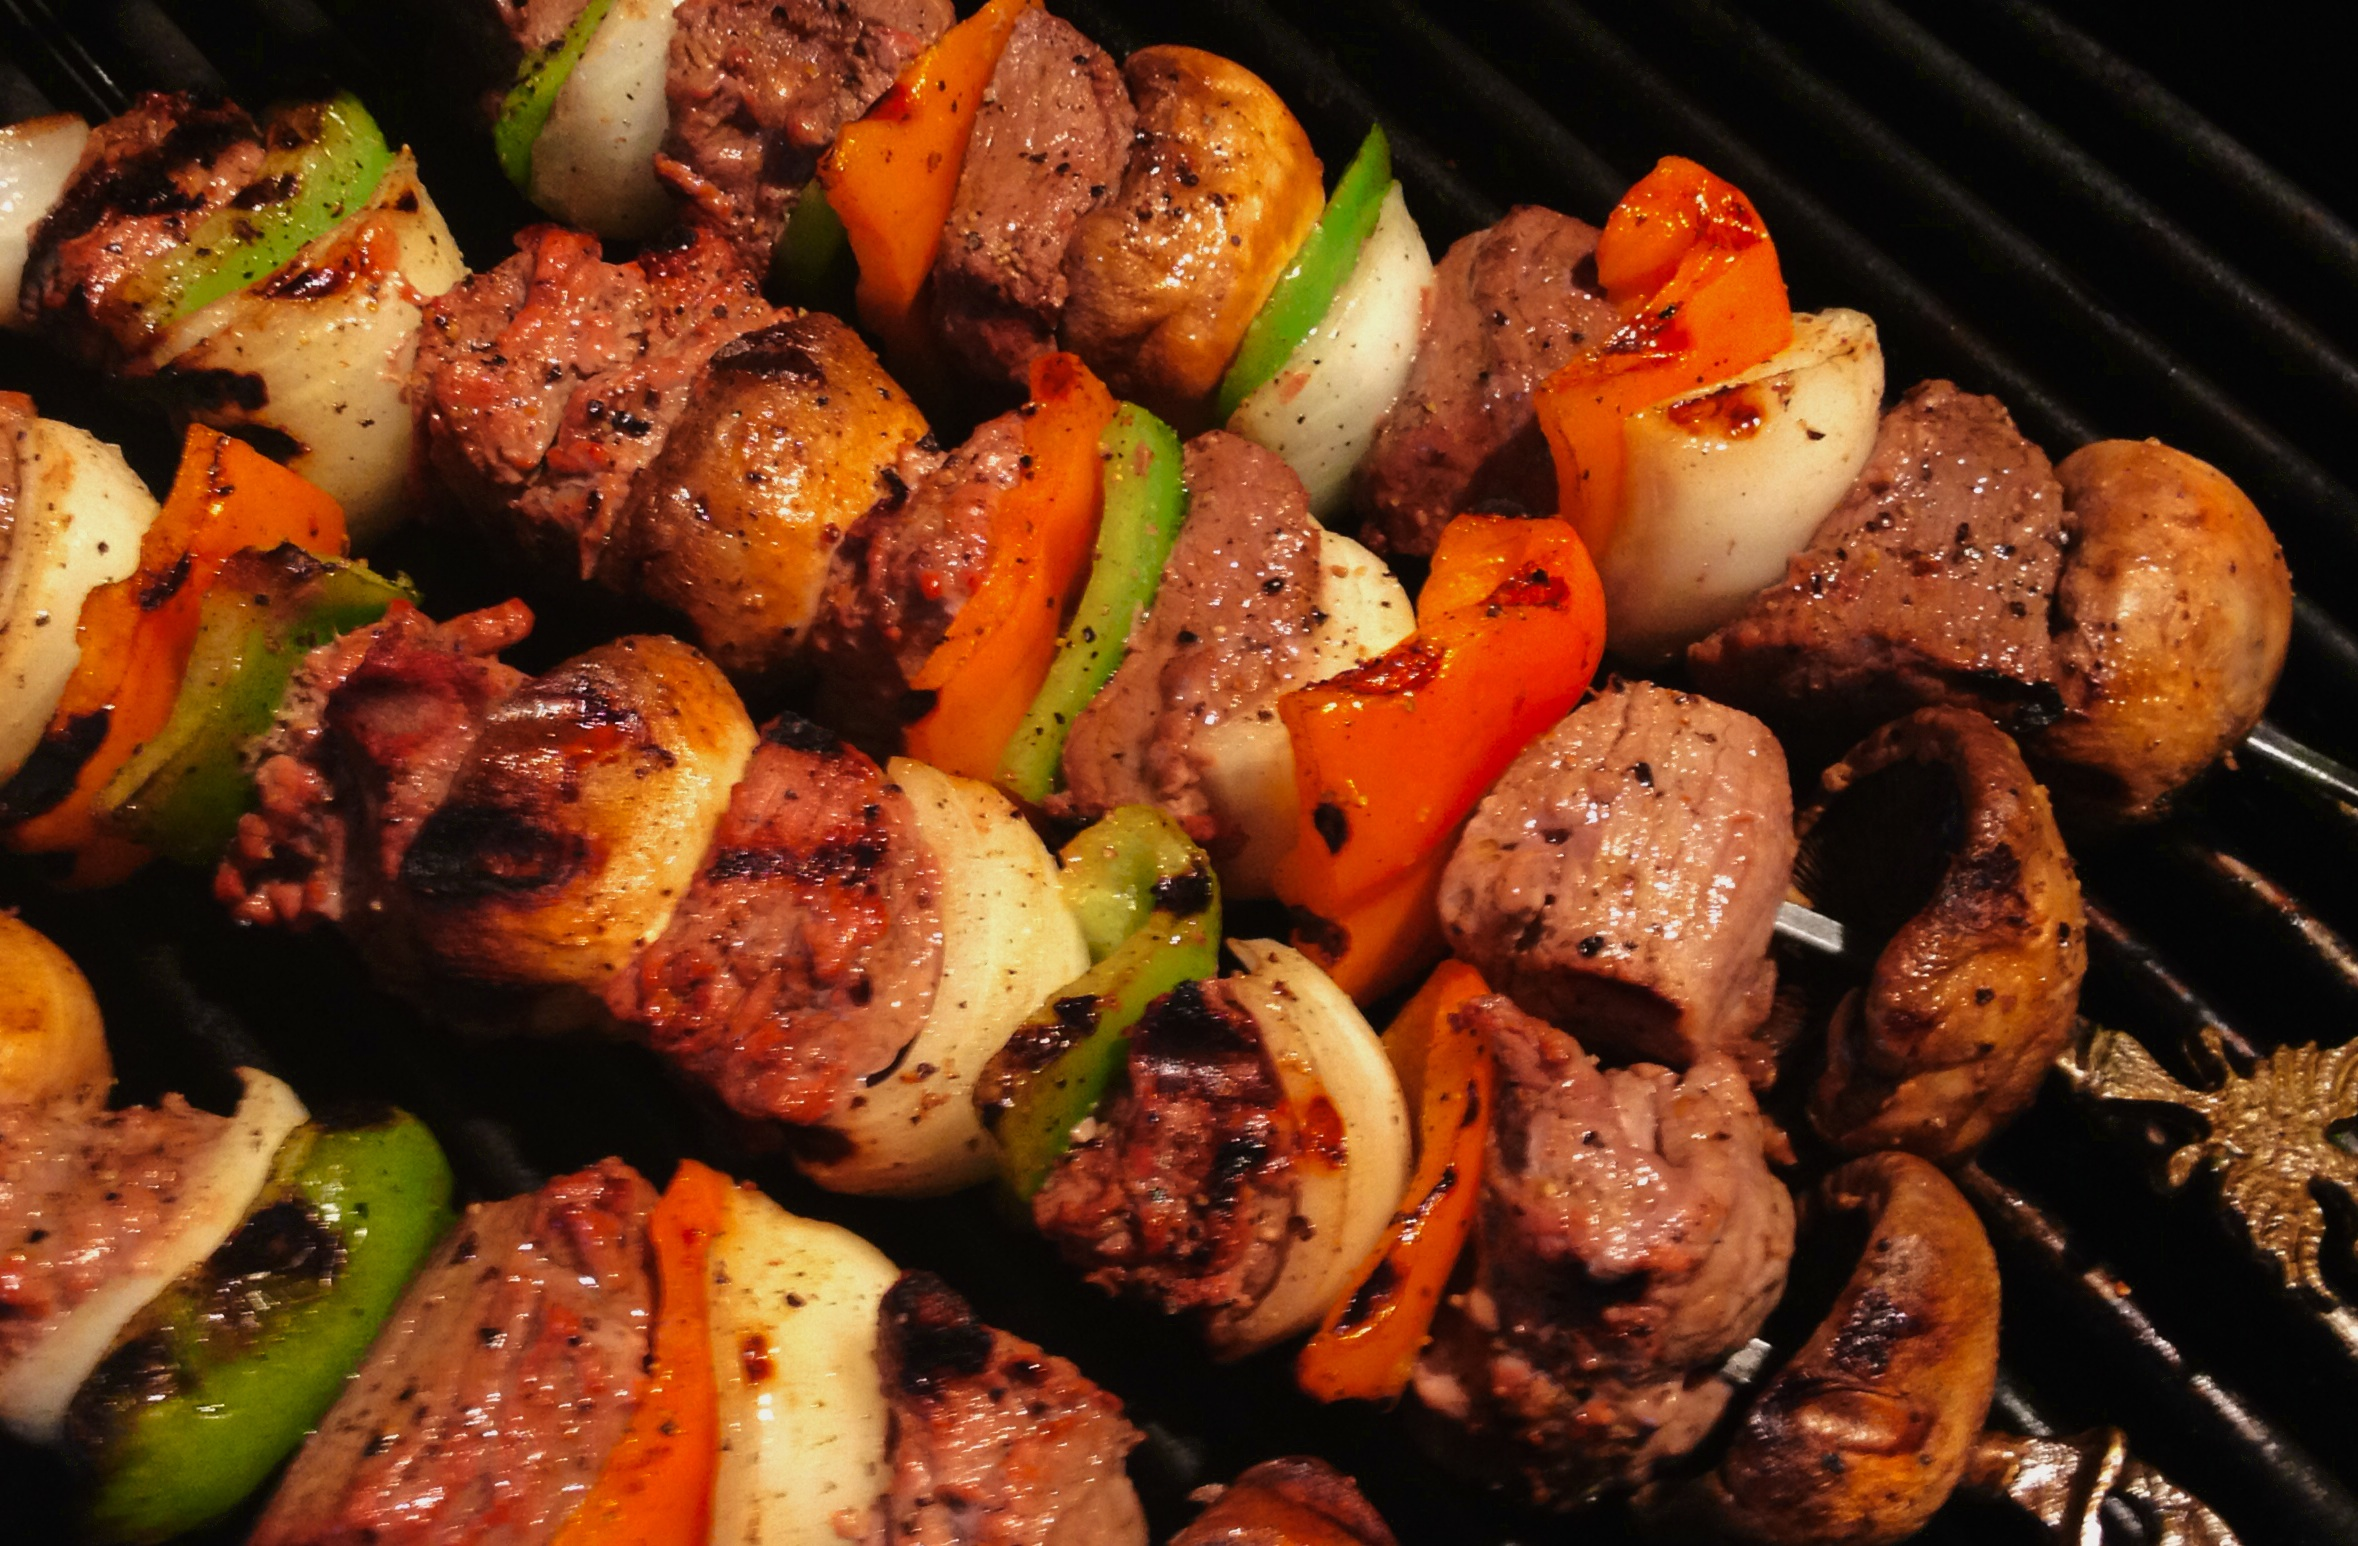 Chocolate Day Hd Wallpaper Beef Tenderloin Shish Kabobs The South In My Mouth